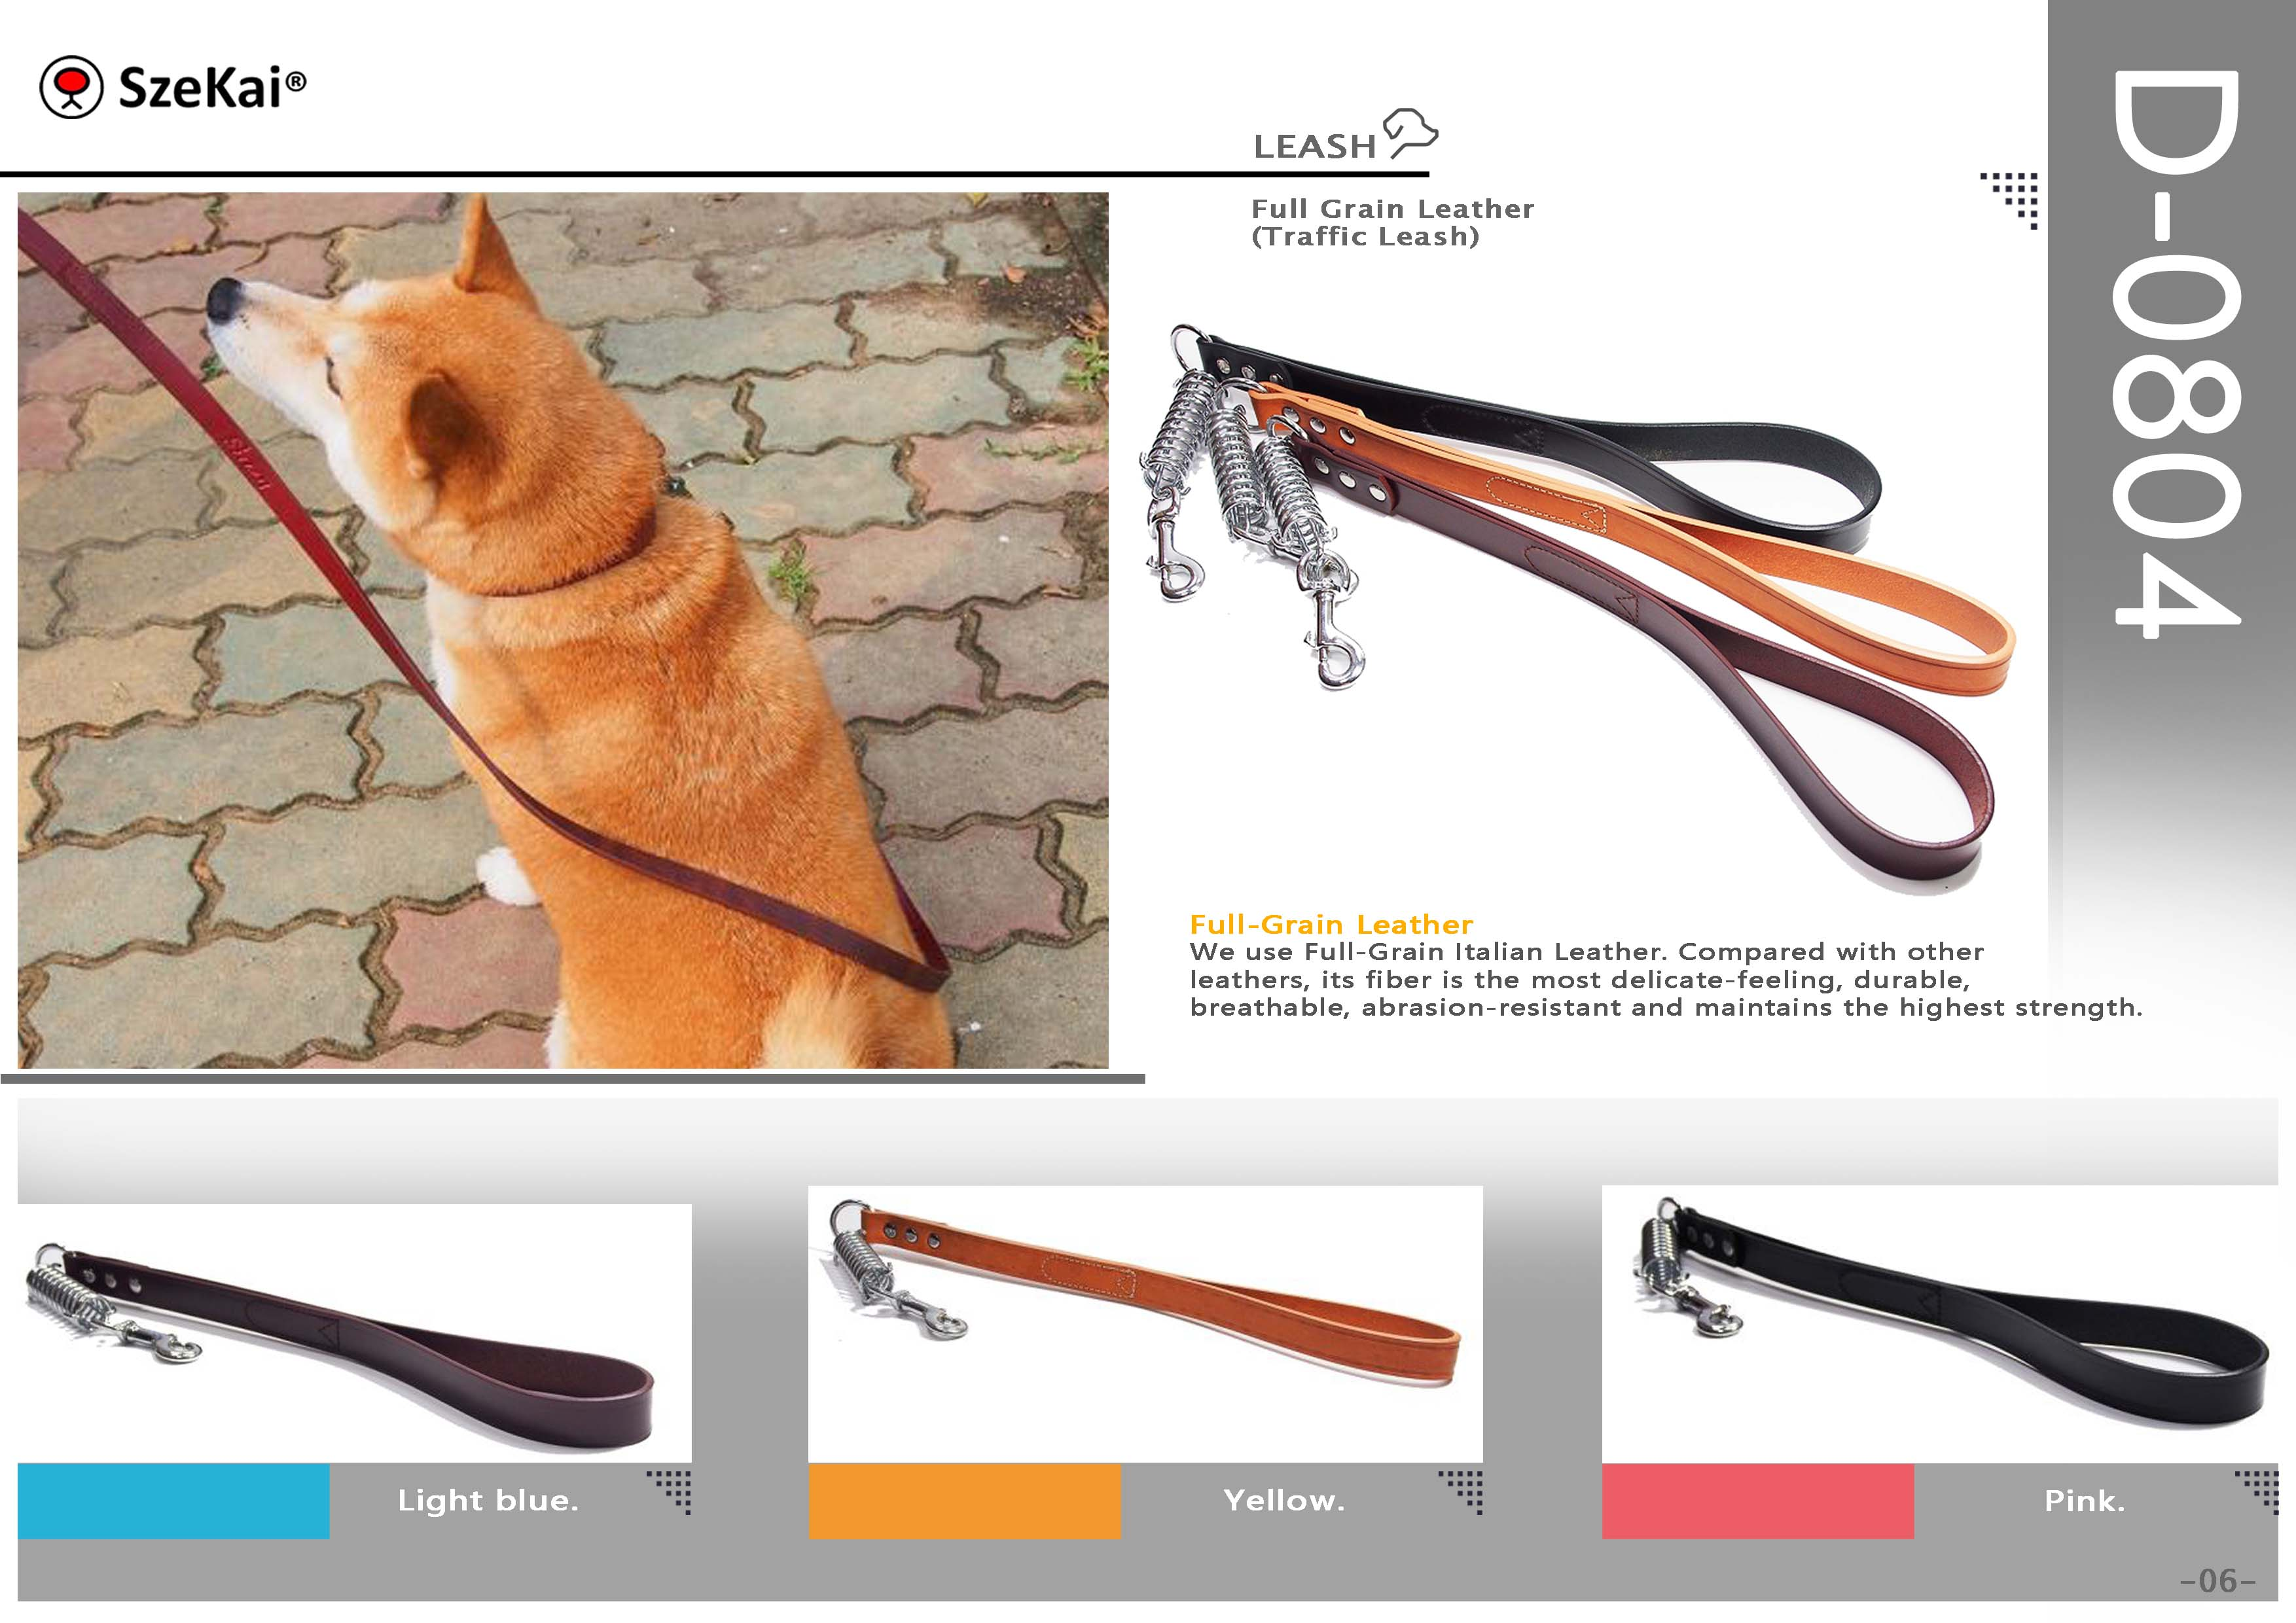 Full Grain Leather Traffic Leash